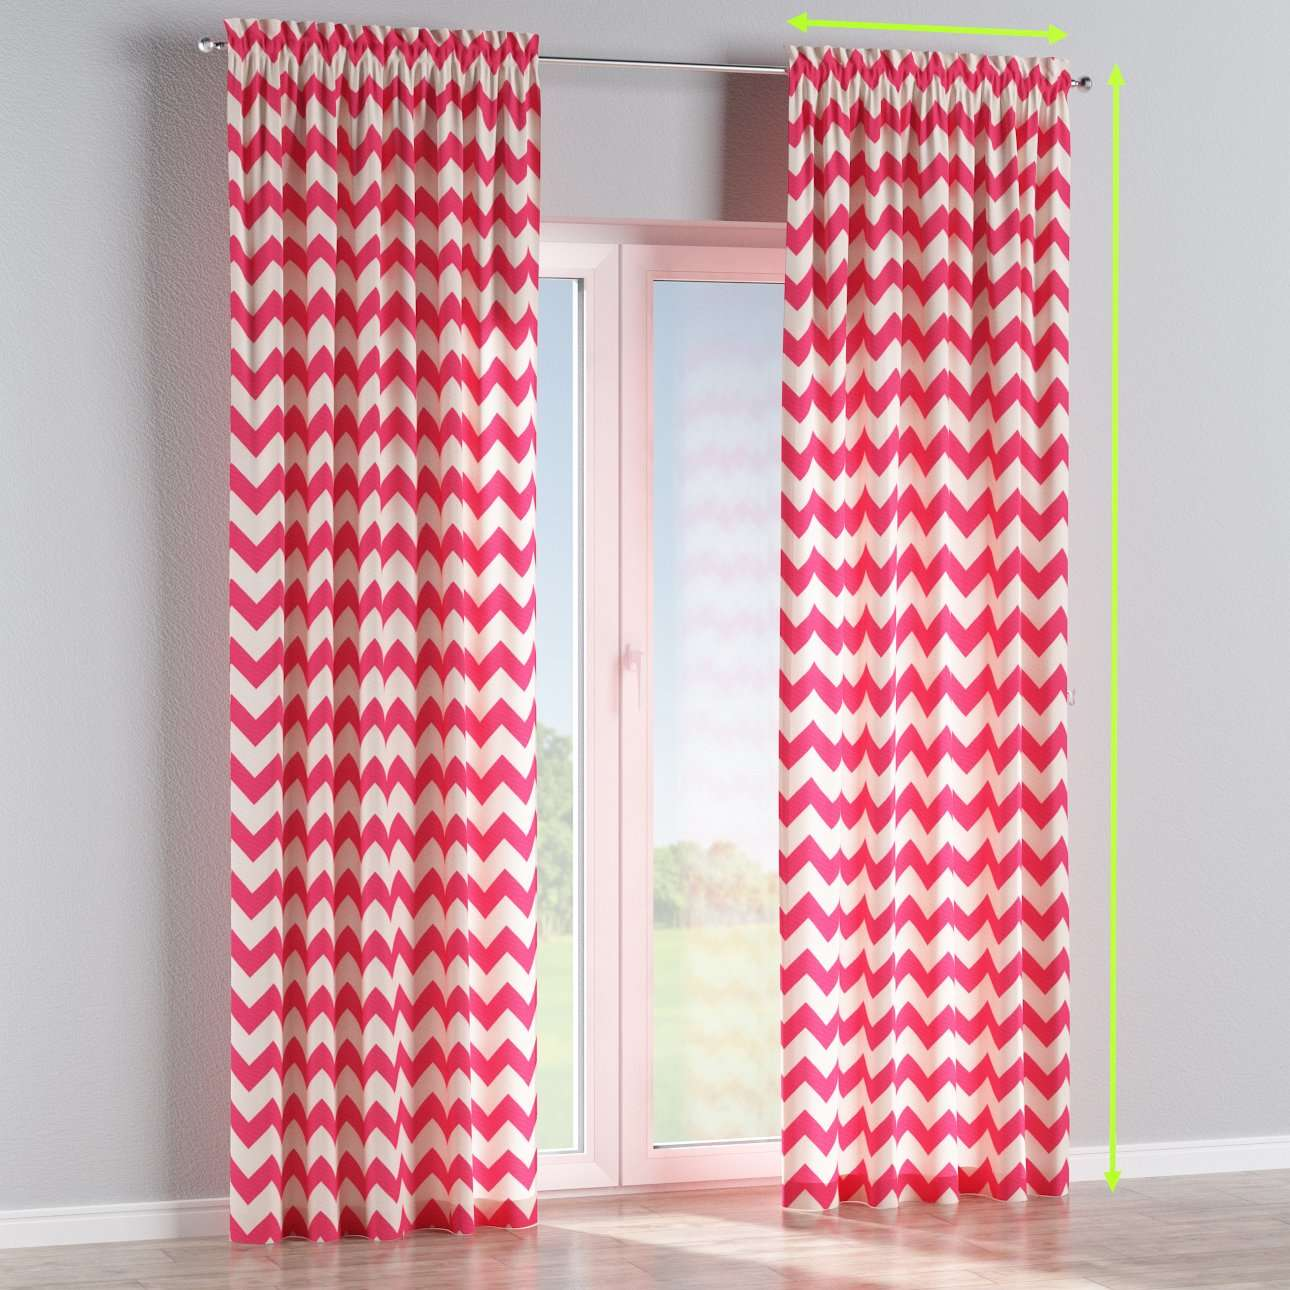 Slot and frill lined curtains in collection Comic Book & Geo Prints, fabric: 135-00